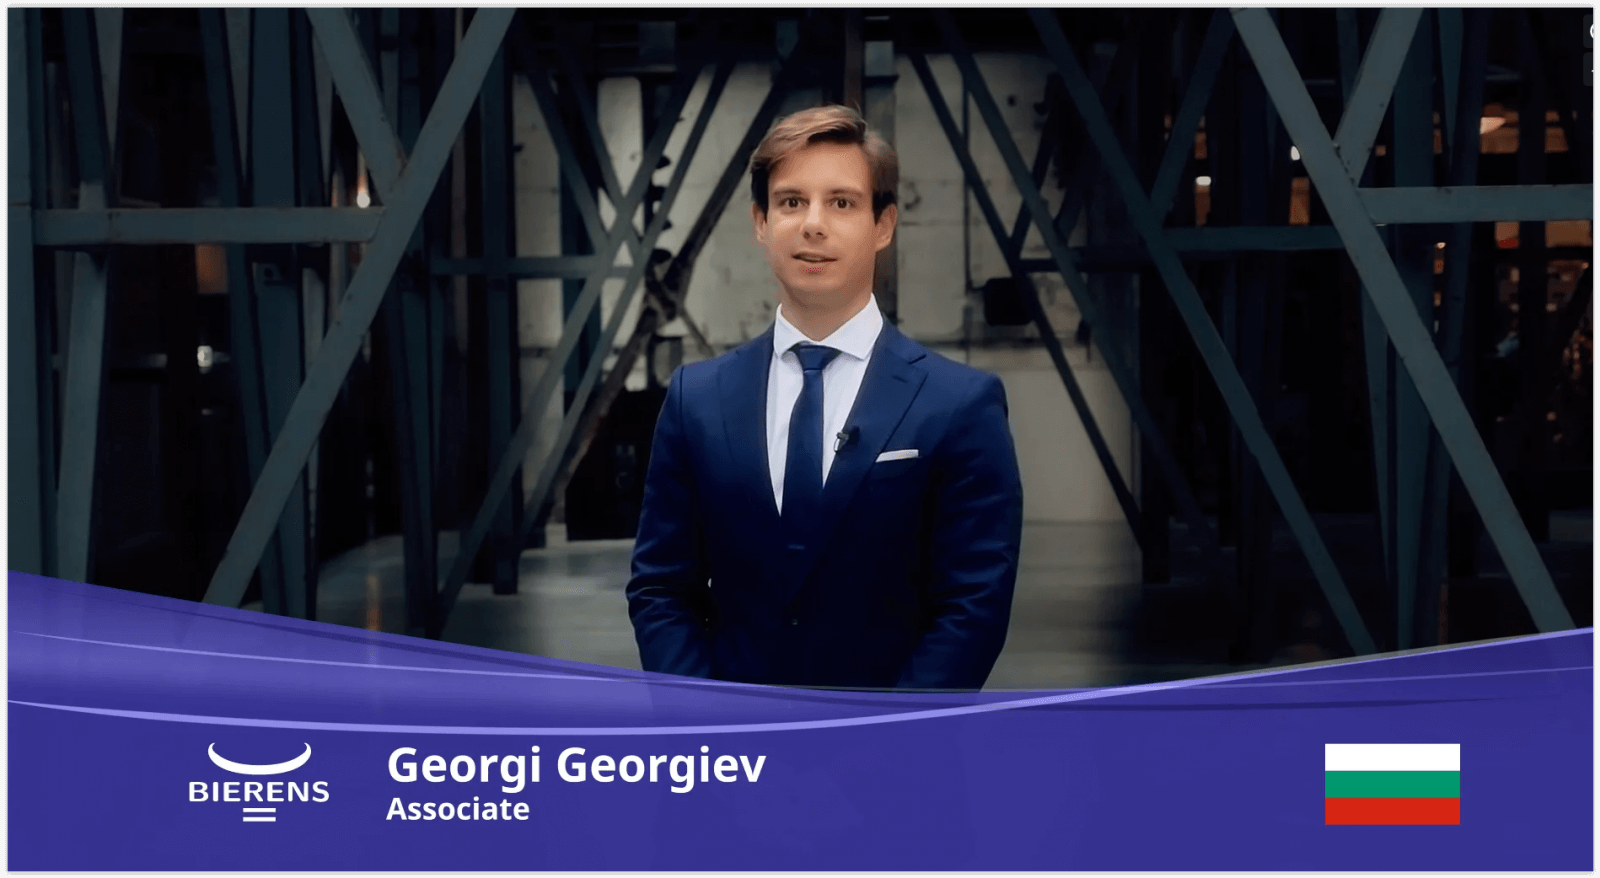 georgi-georgiev-video